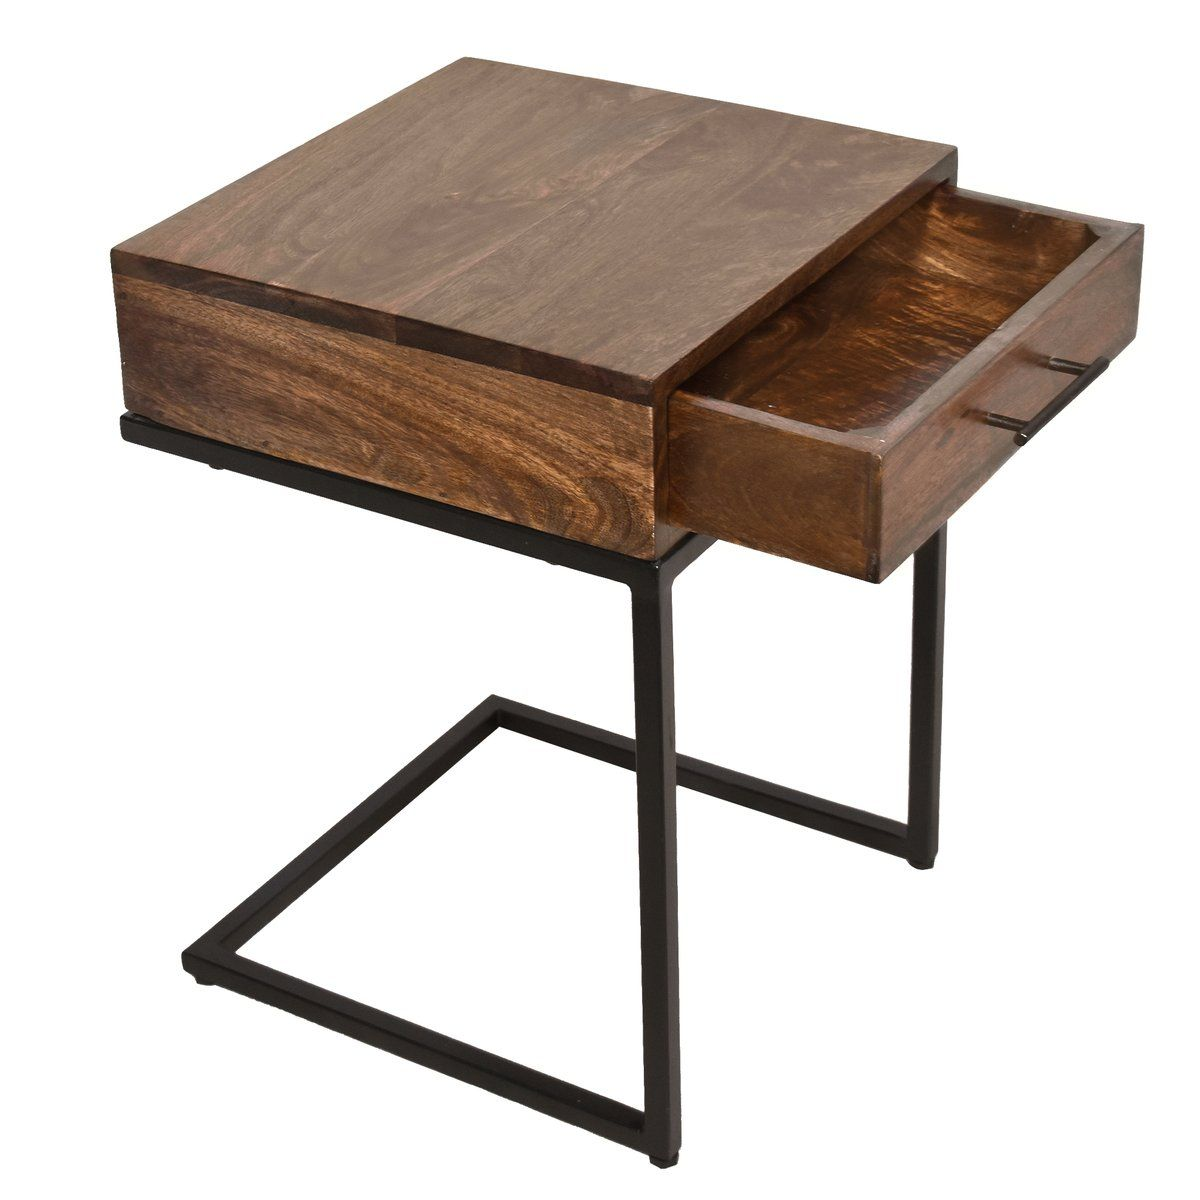 Upt 186118 Mango Wood Side Table With Drawer And Cantilever Iron Base Brown And Black Side Table Wood Side Table With Drawer Side Table